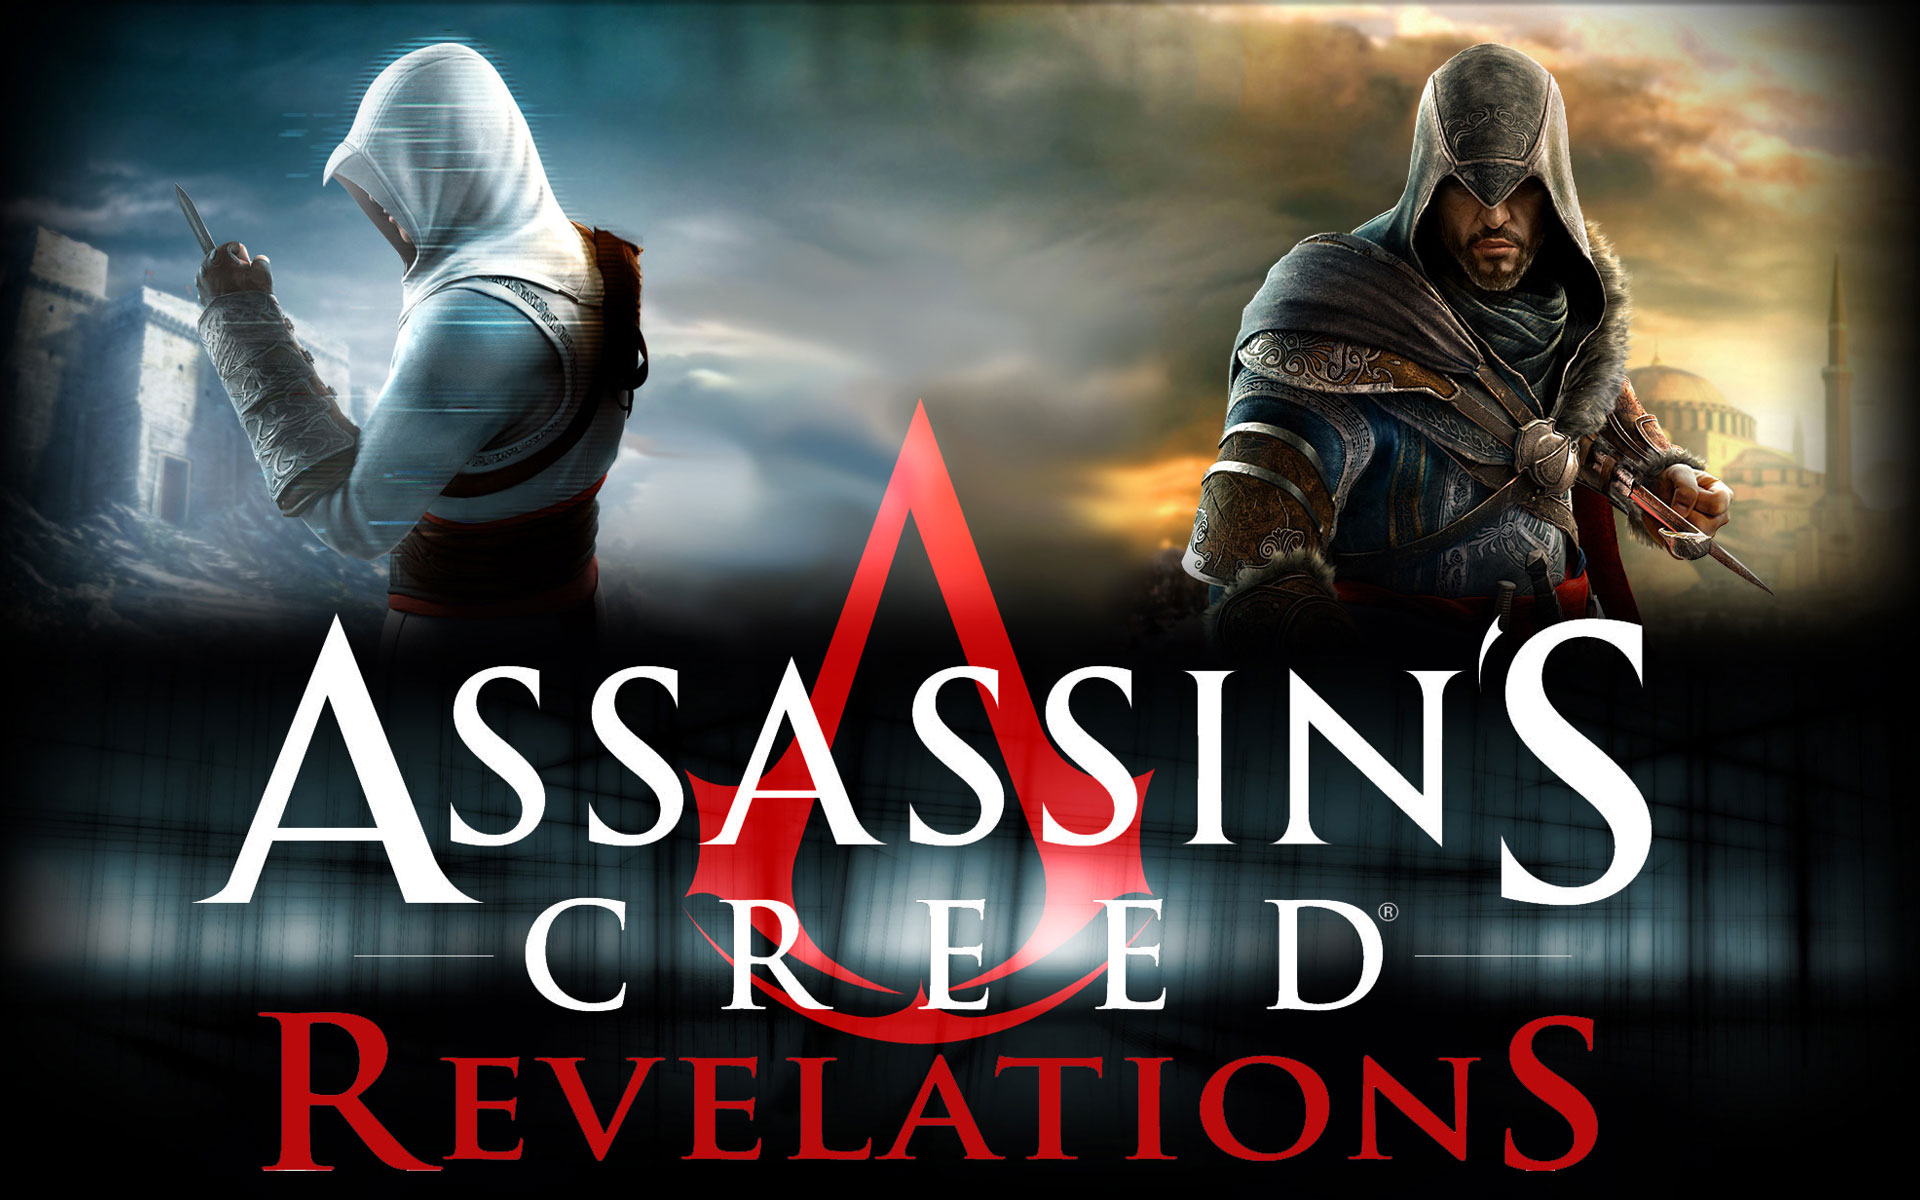 Assassin S Creed Revelations Wallpaper Hd Video Games Blogger